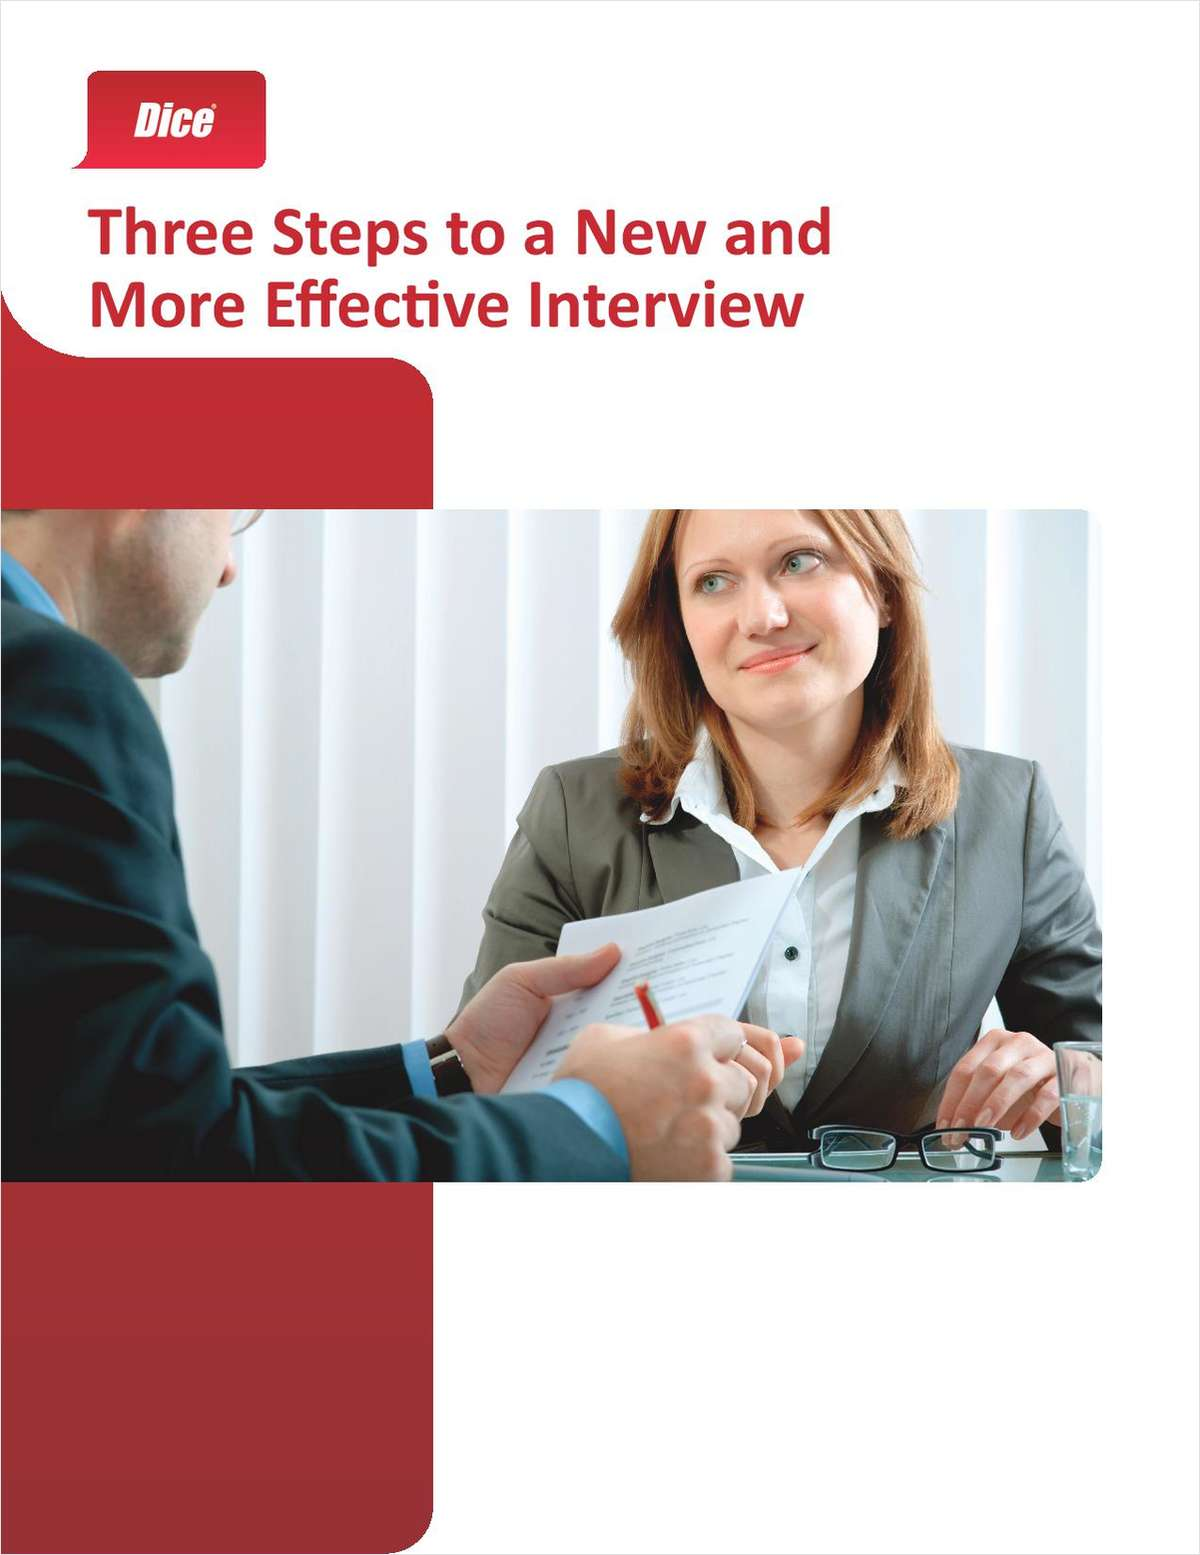 Three Steps to a New and More Effective Interview